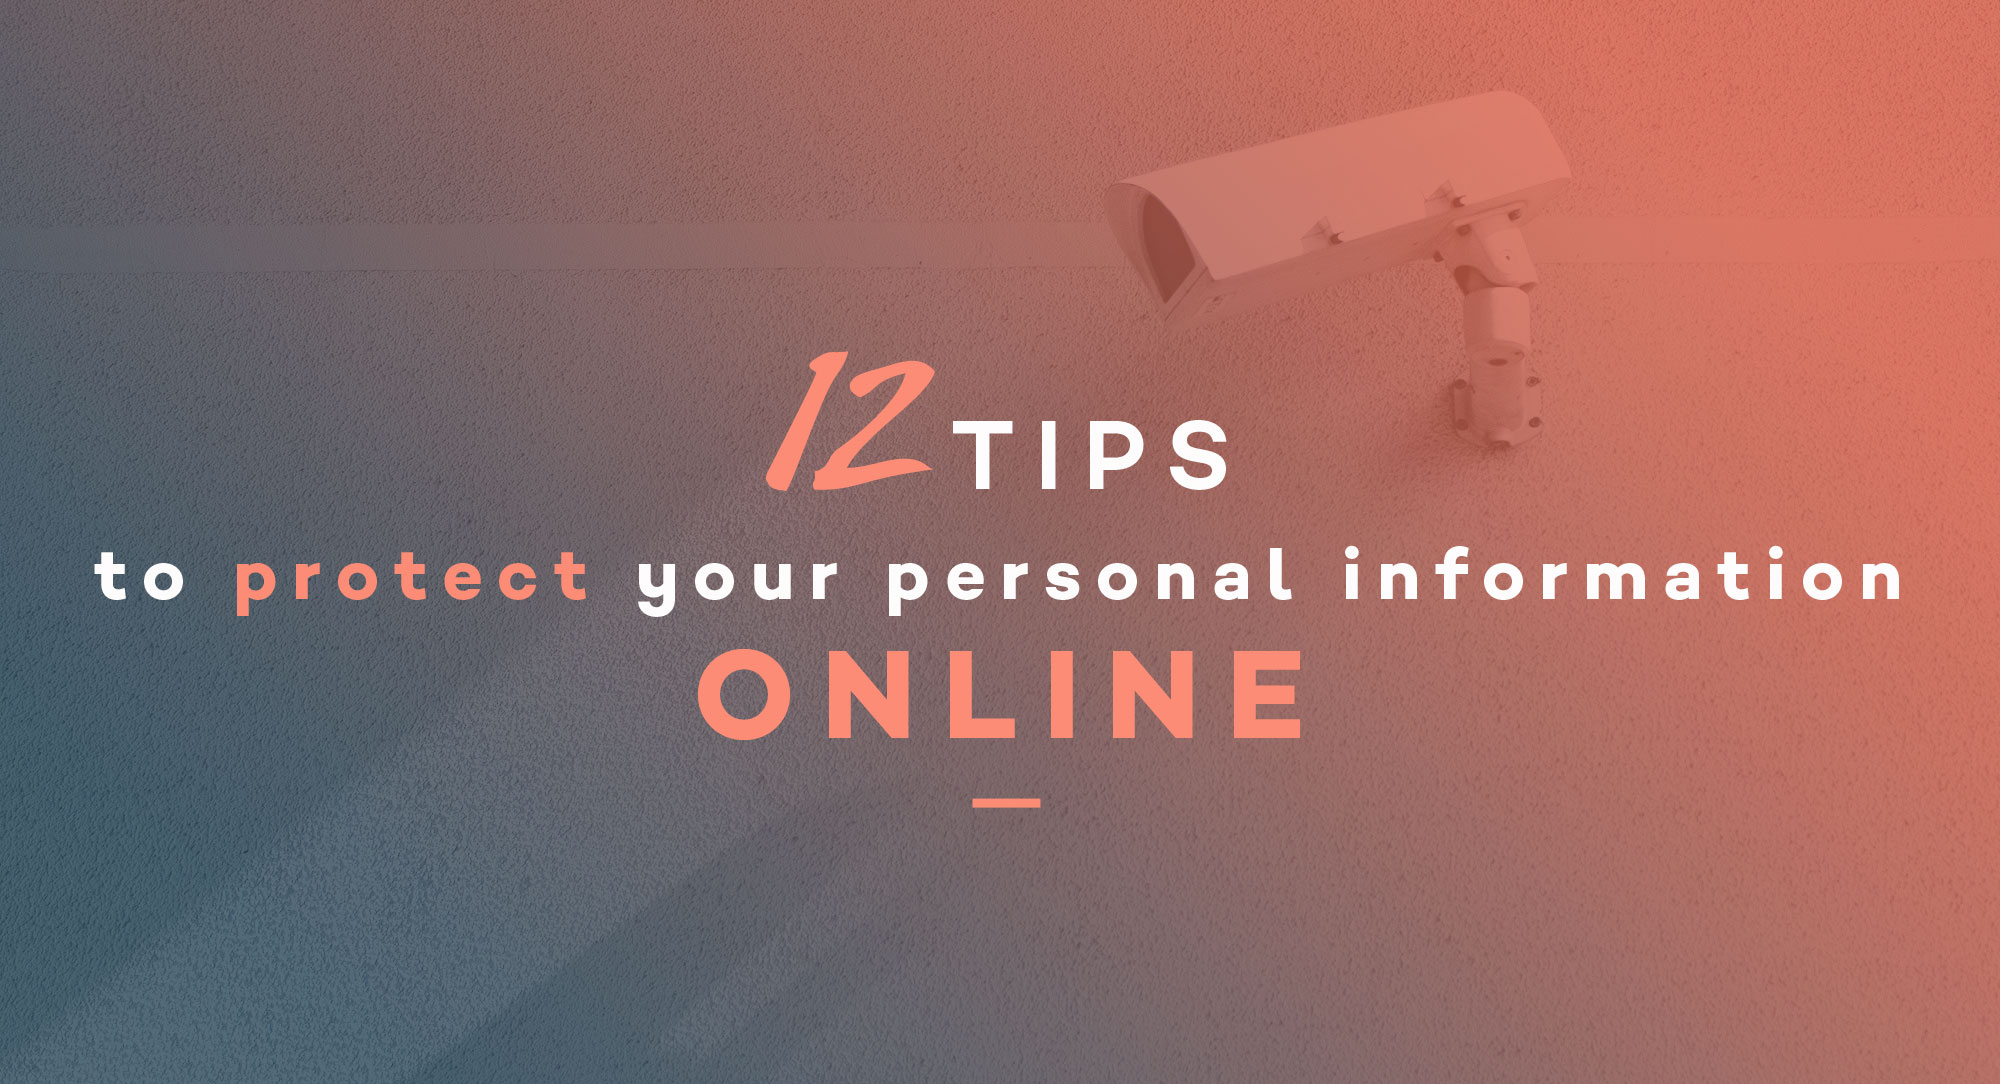 12 tips to protect your online data